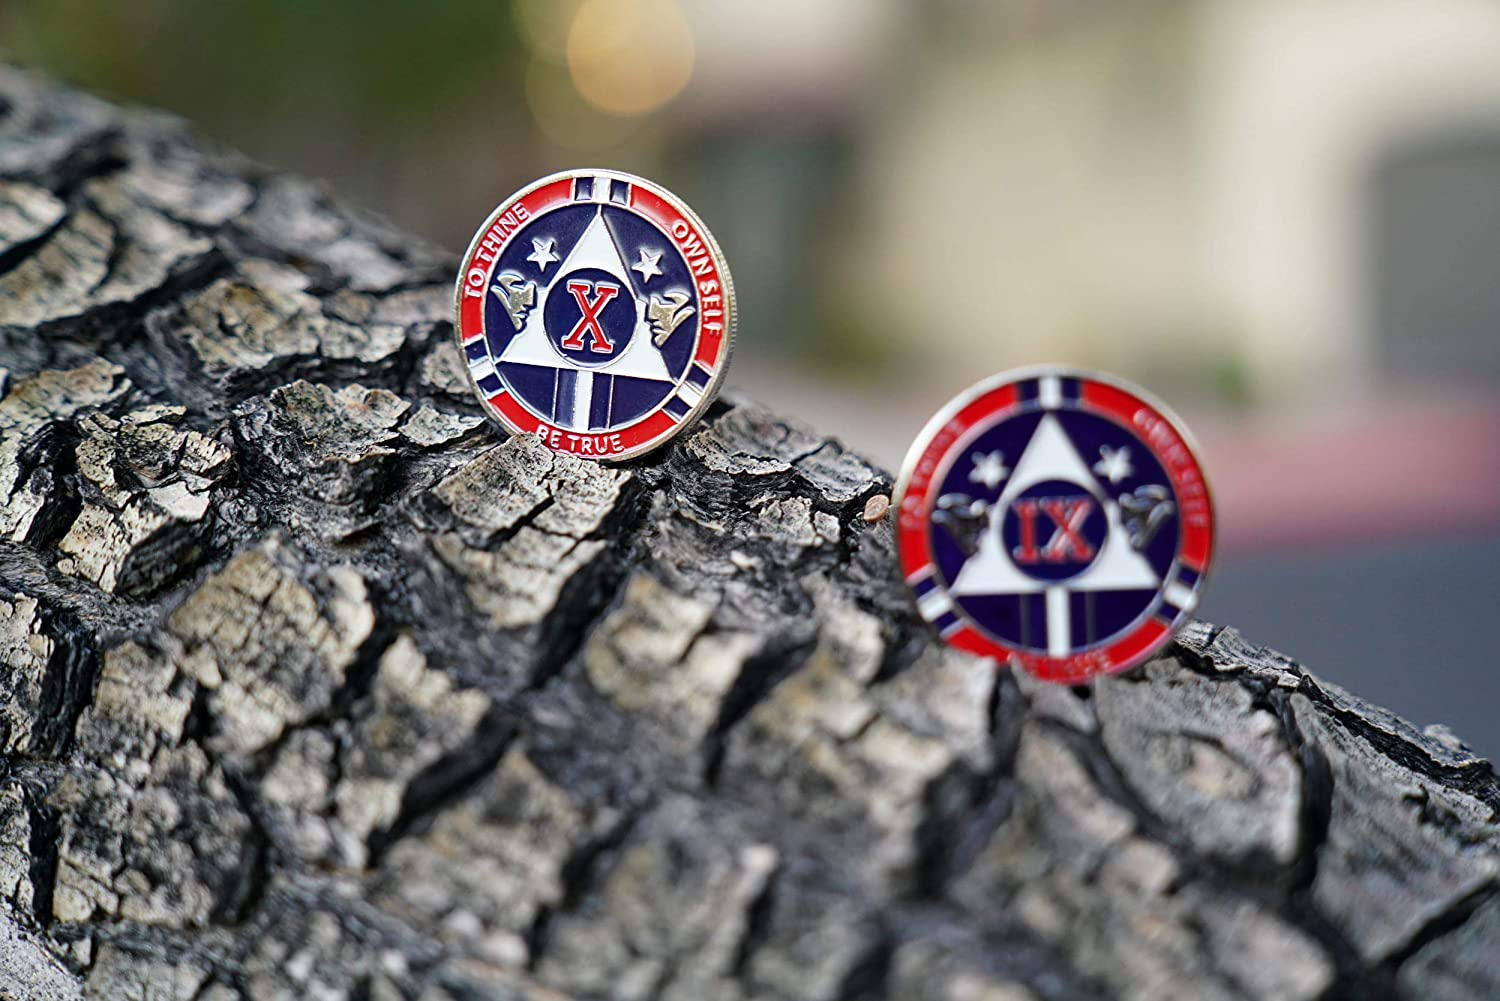 MyRecoveryStore 26 Year Red and Blue Patriotic Yearly AA Medallion Large Sized w//Coin Capsule Red and Blue Alcoholics Anonymous AA Chip 1-50 Years